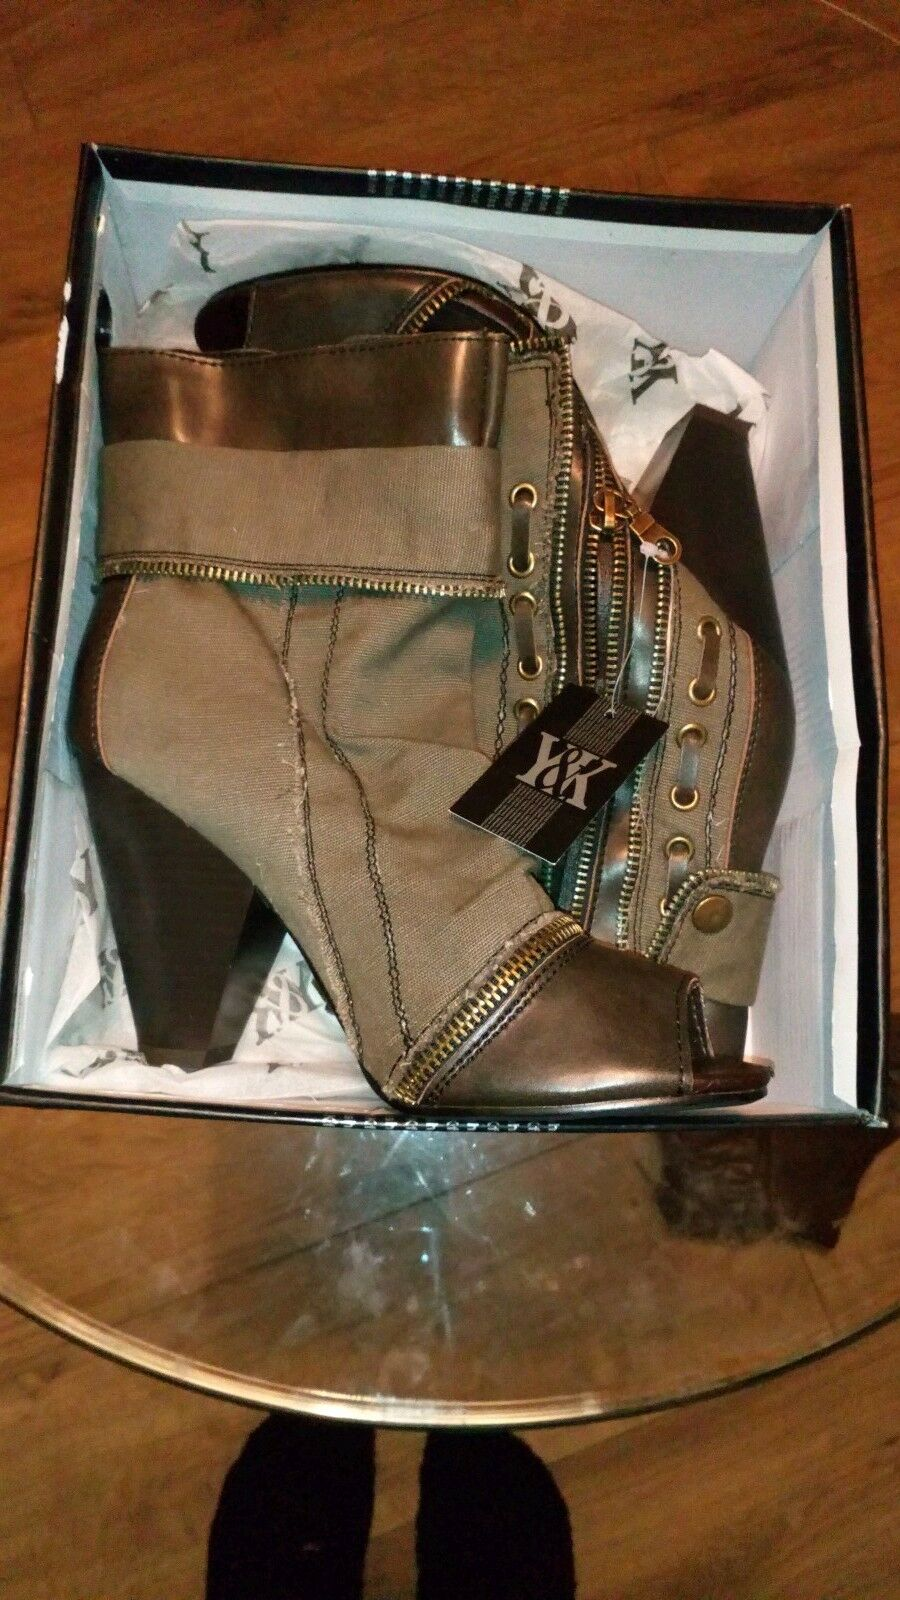 Women y&k millitary open toe khaki and black ankle boots uk4